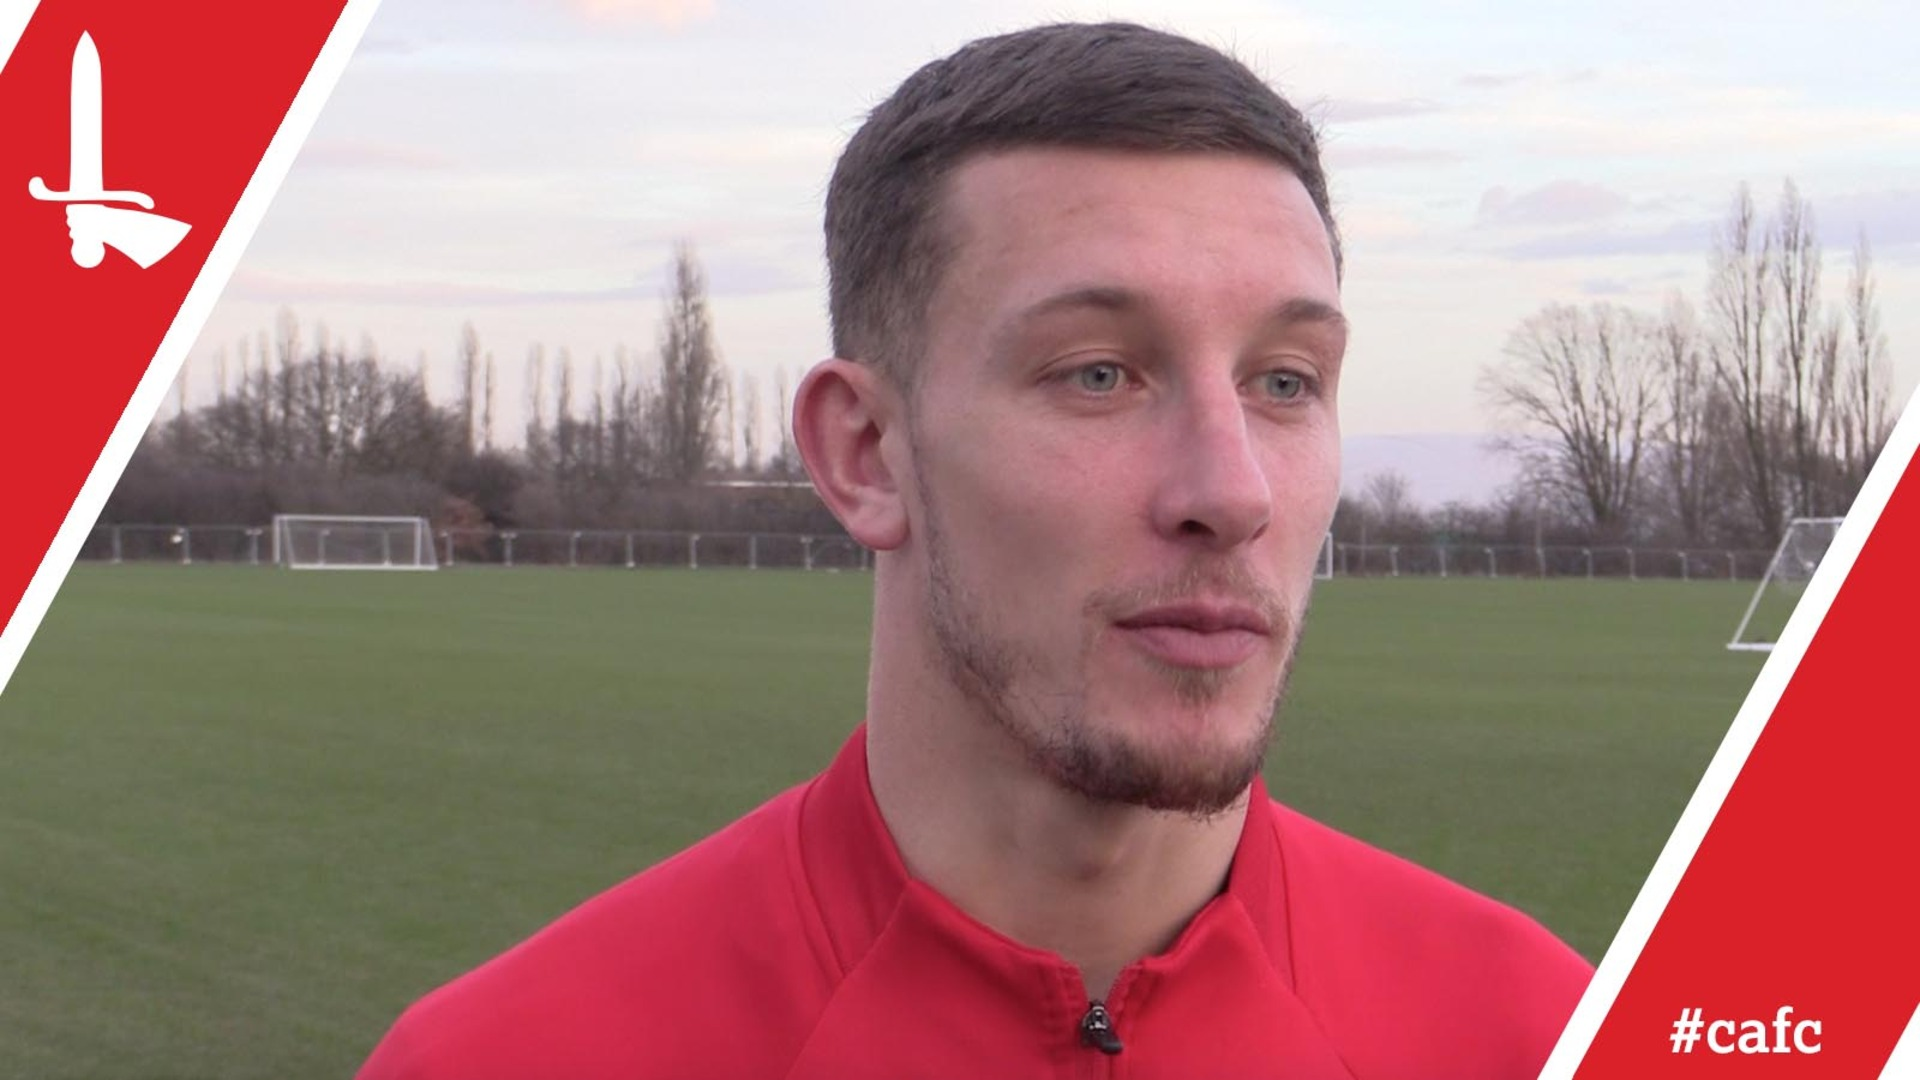 Jason Pearce relieved to be back after featuring for Charlton's U23s